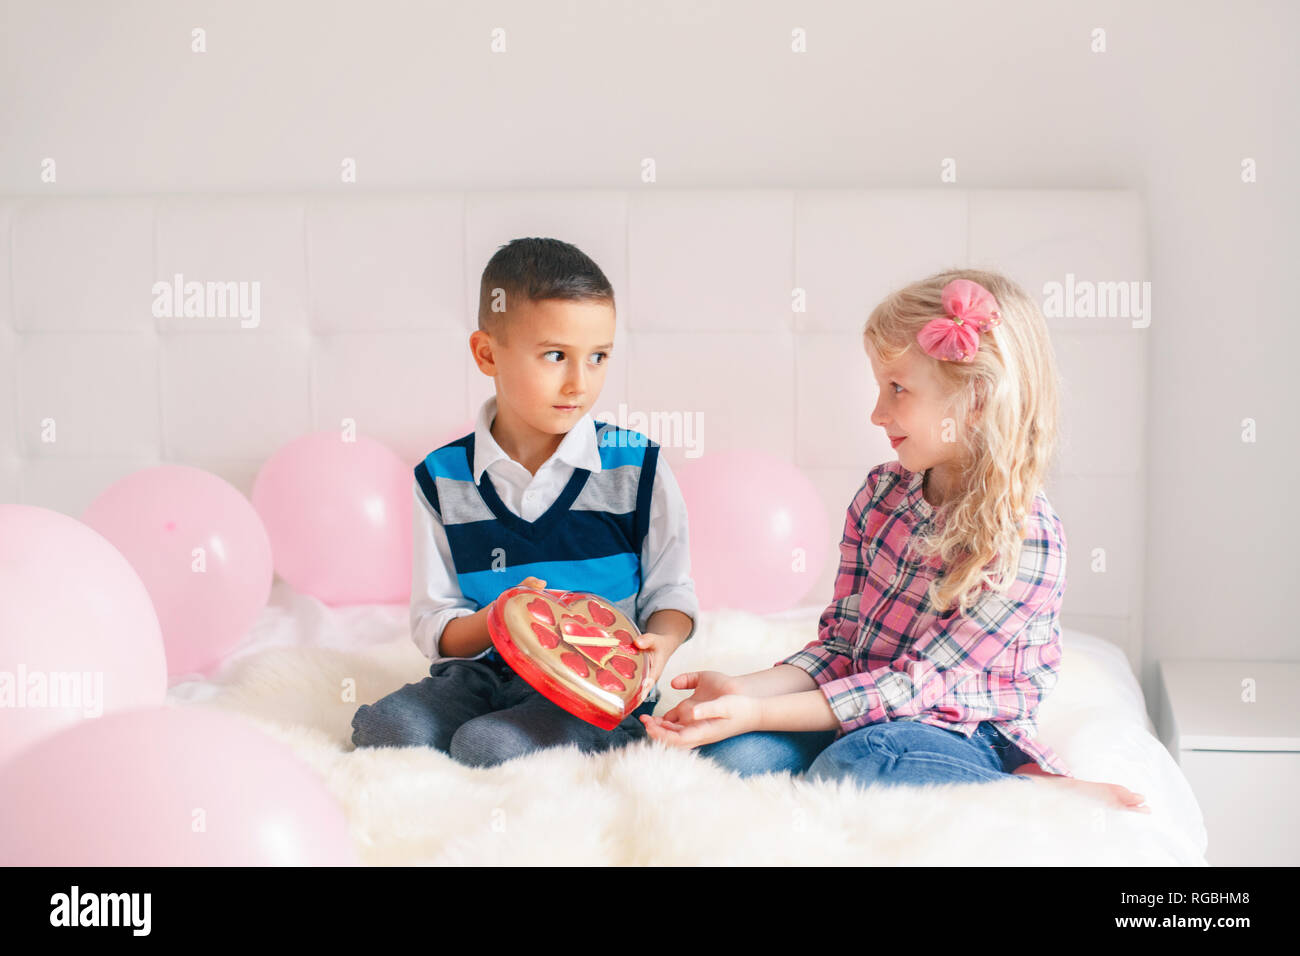 086deb31cdff8 Group portrait of two Caucasian cute adorable children eating heart shaped  candies. Boy giving girl